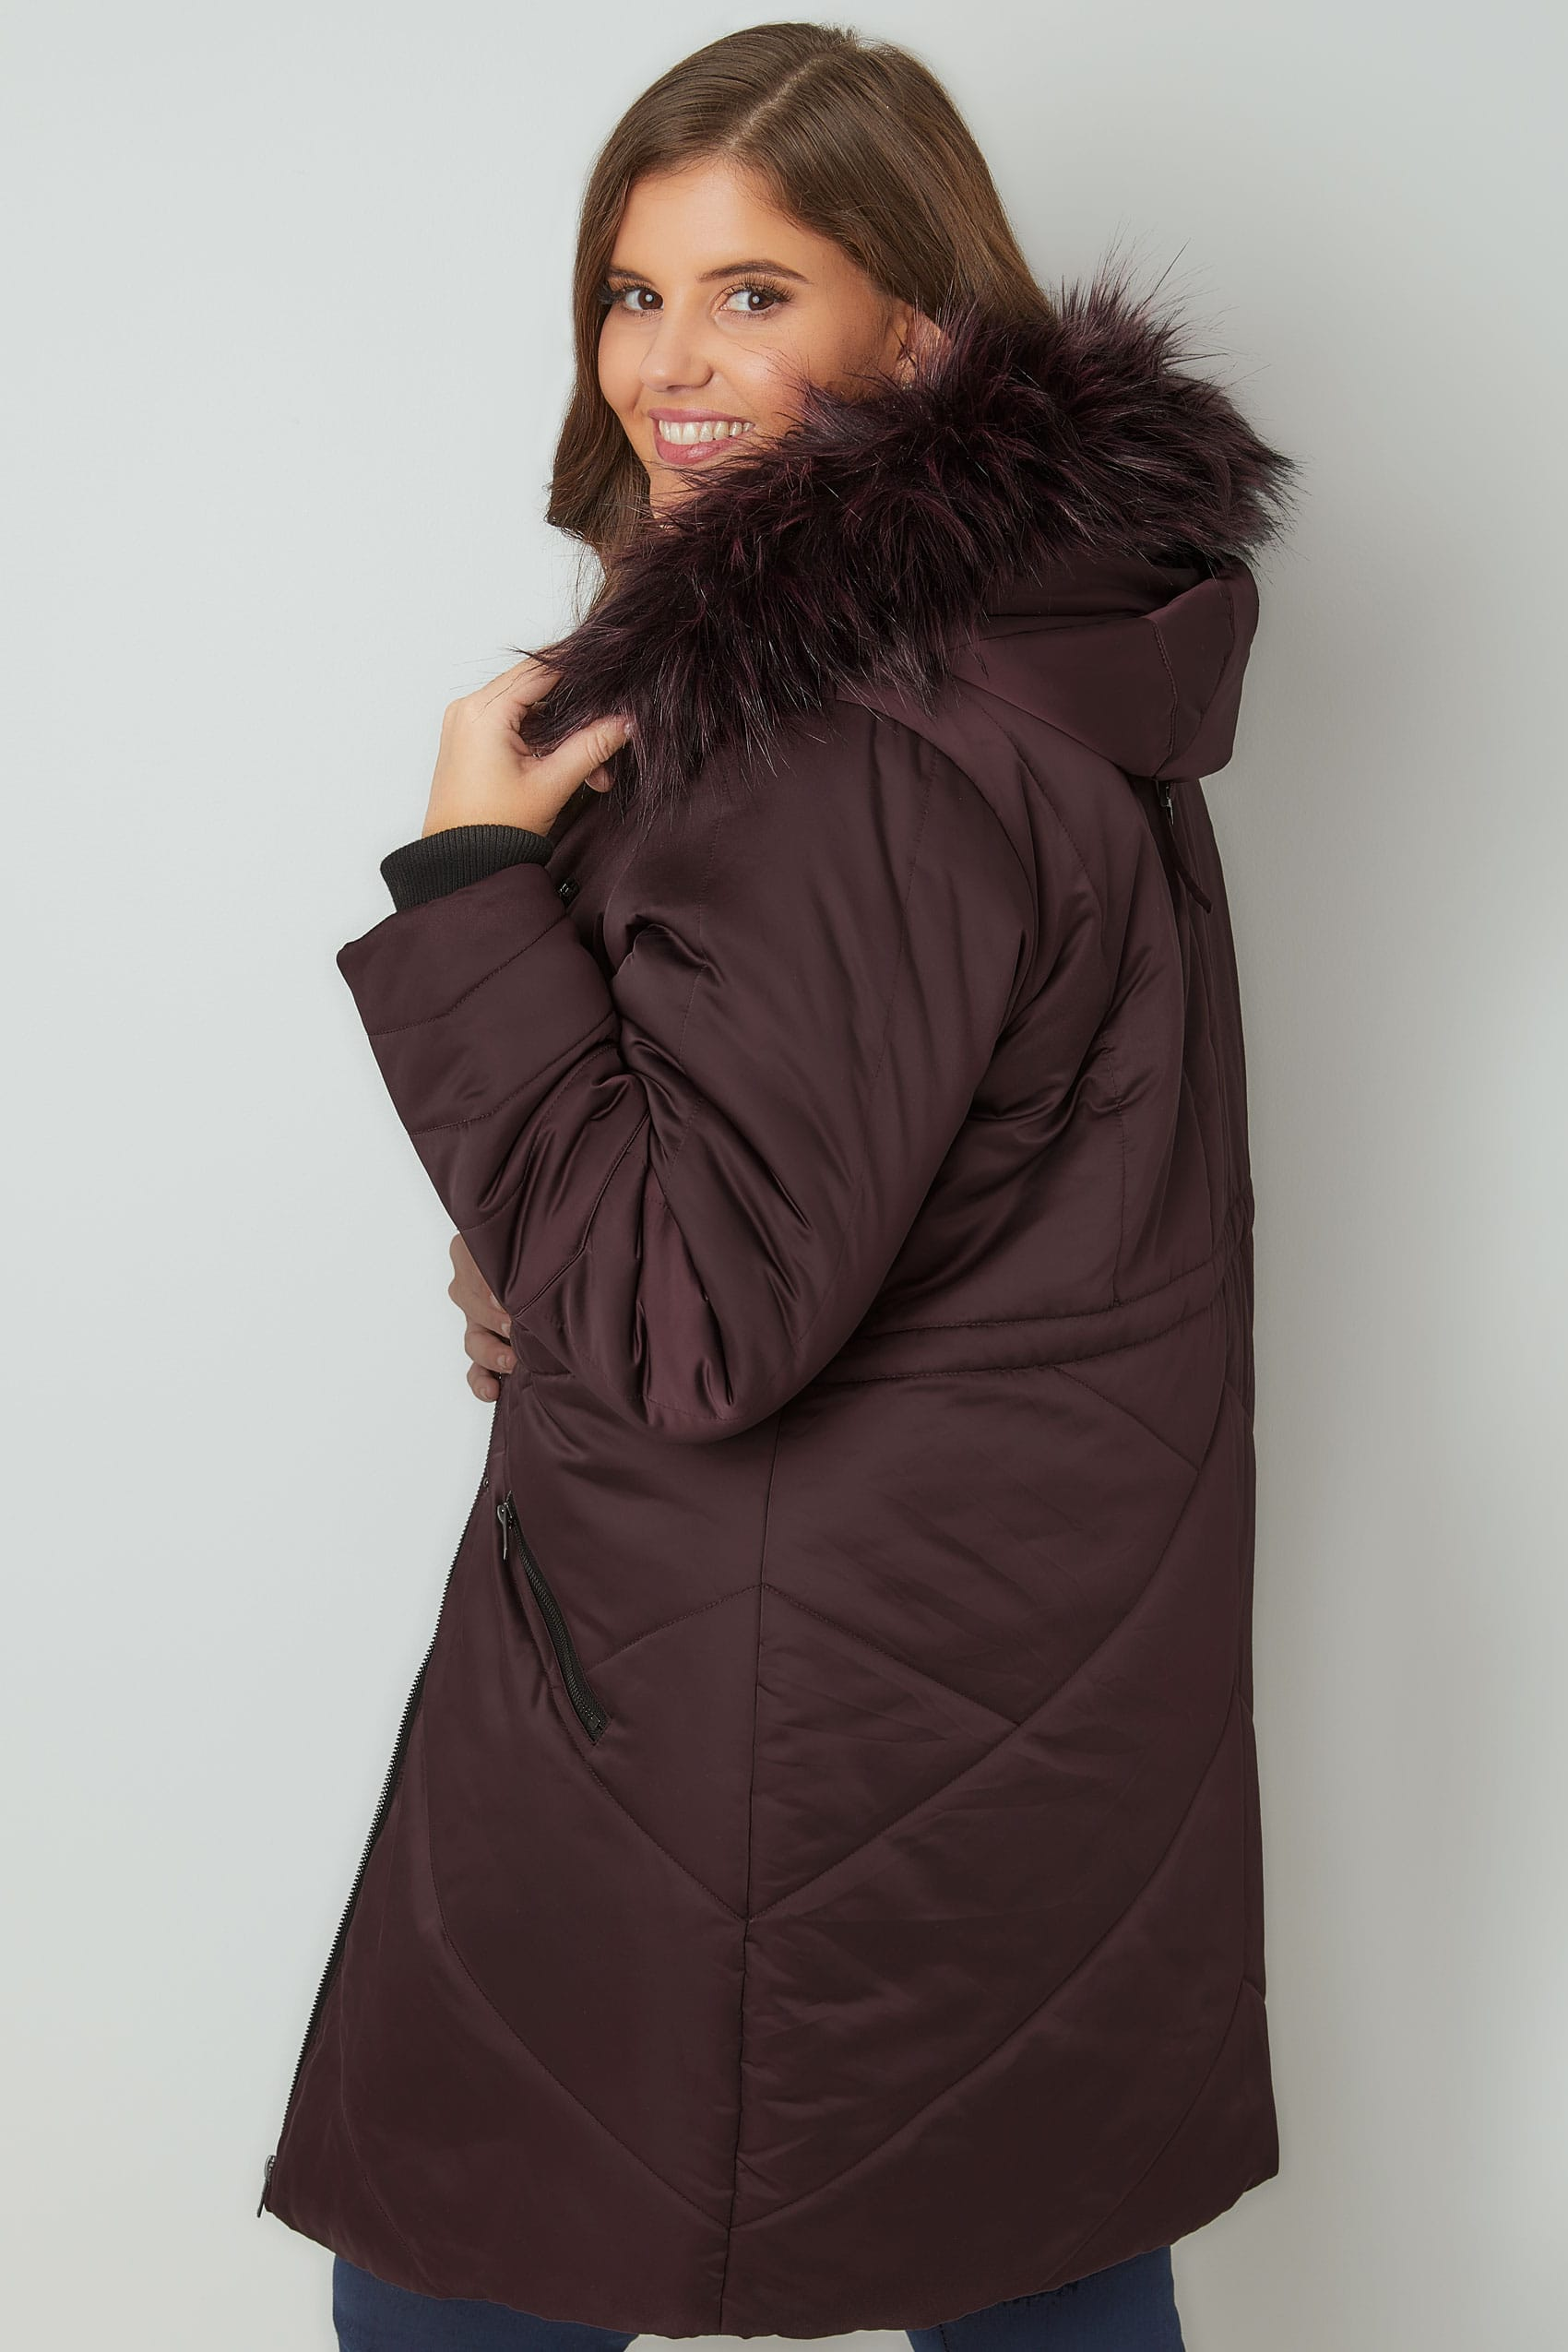 Purple Padded Parka Jacket With Faux Fur Hood, Plus size 16 to 36